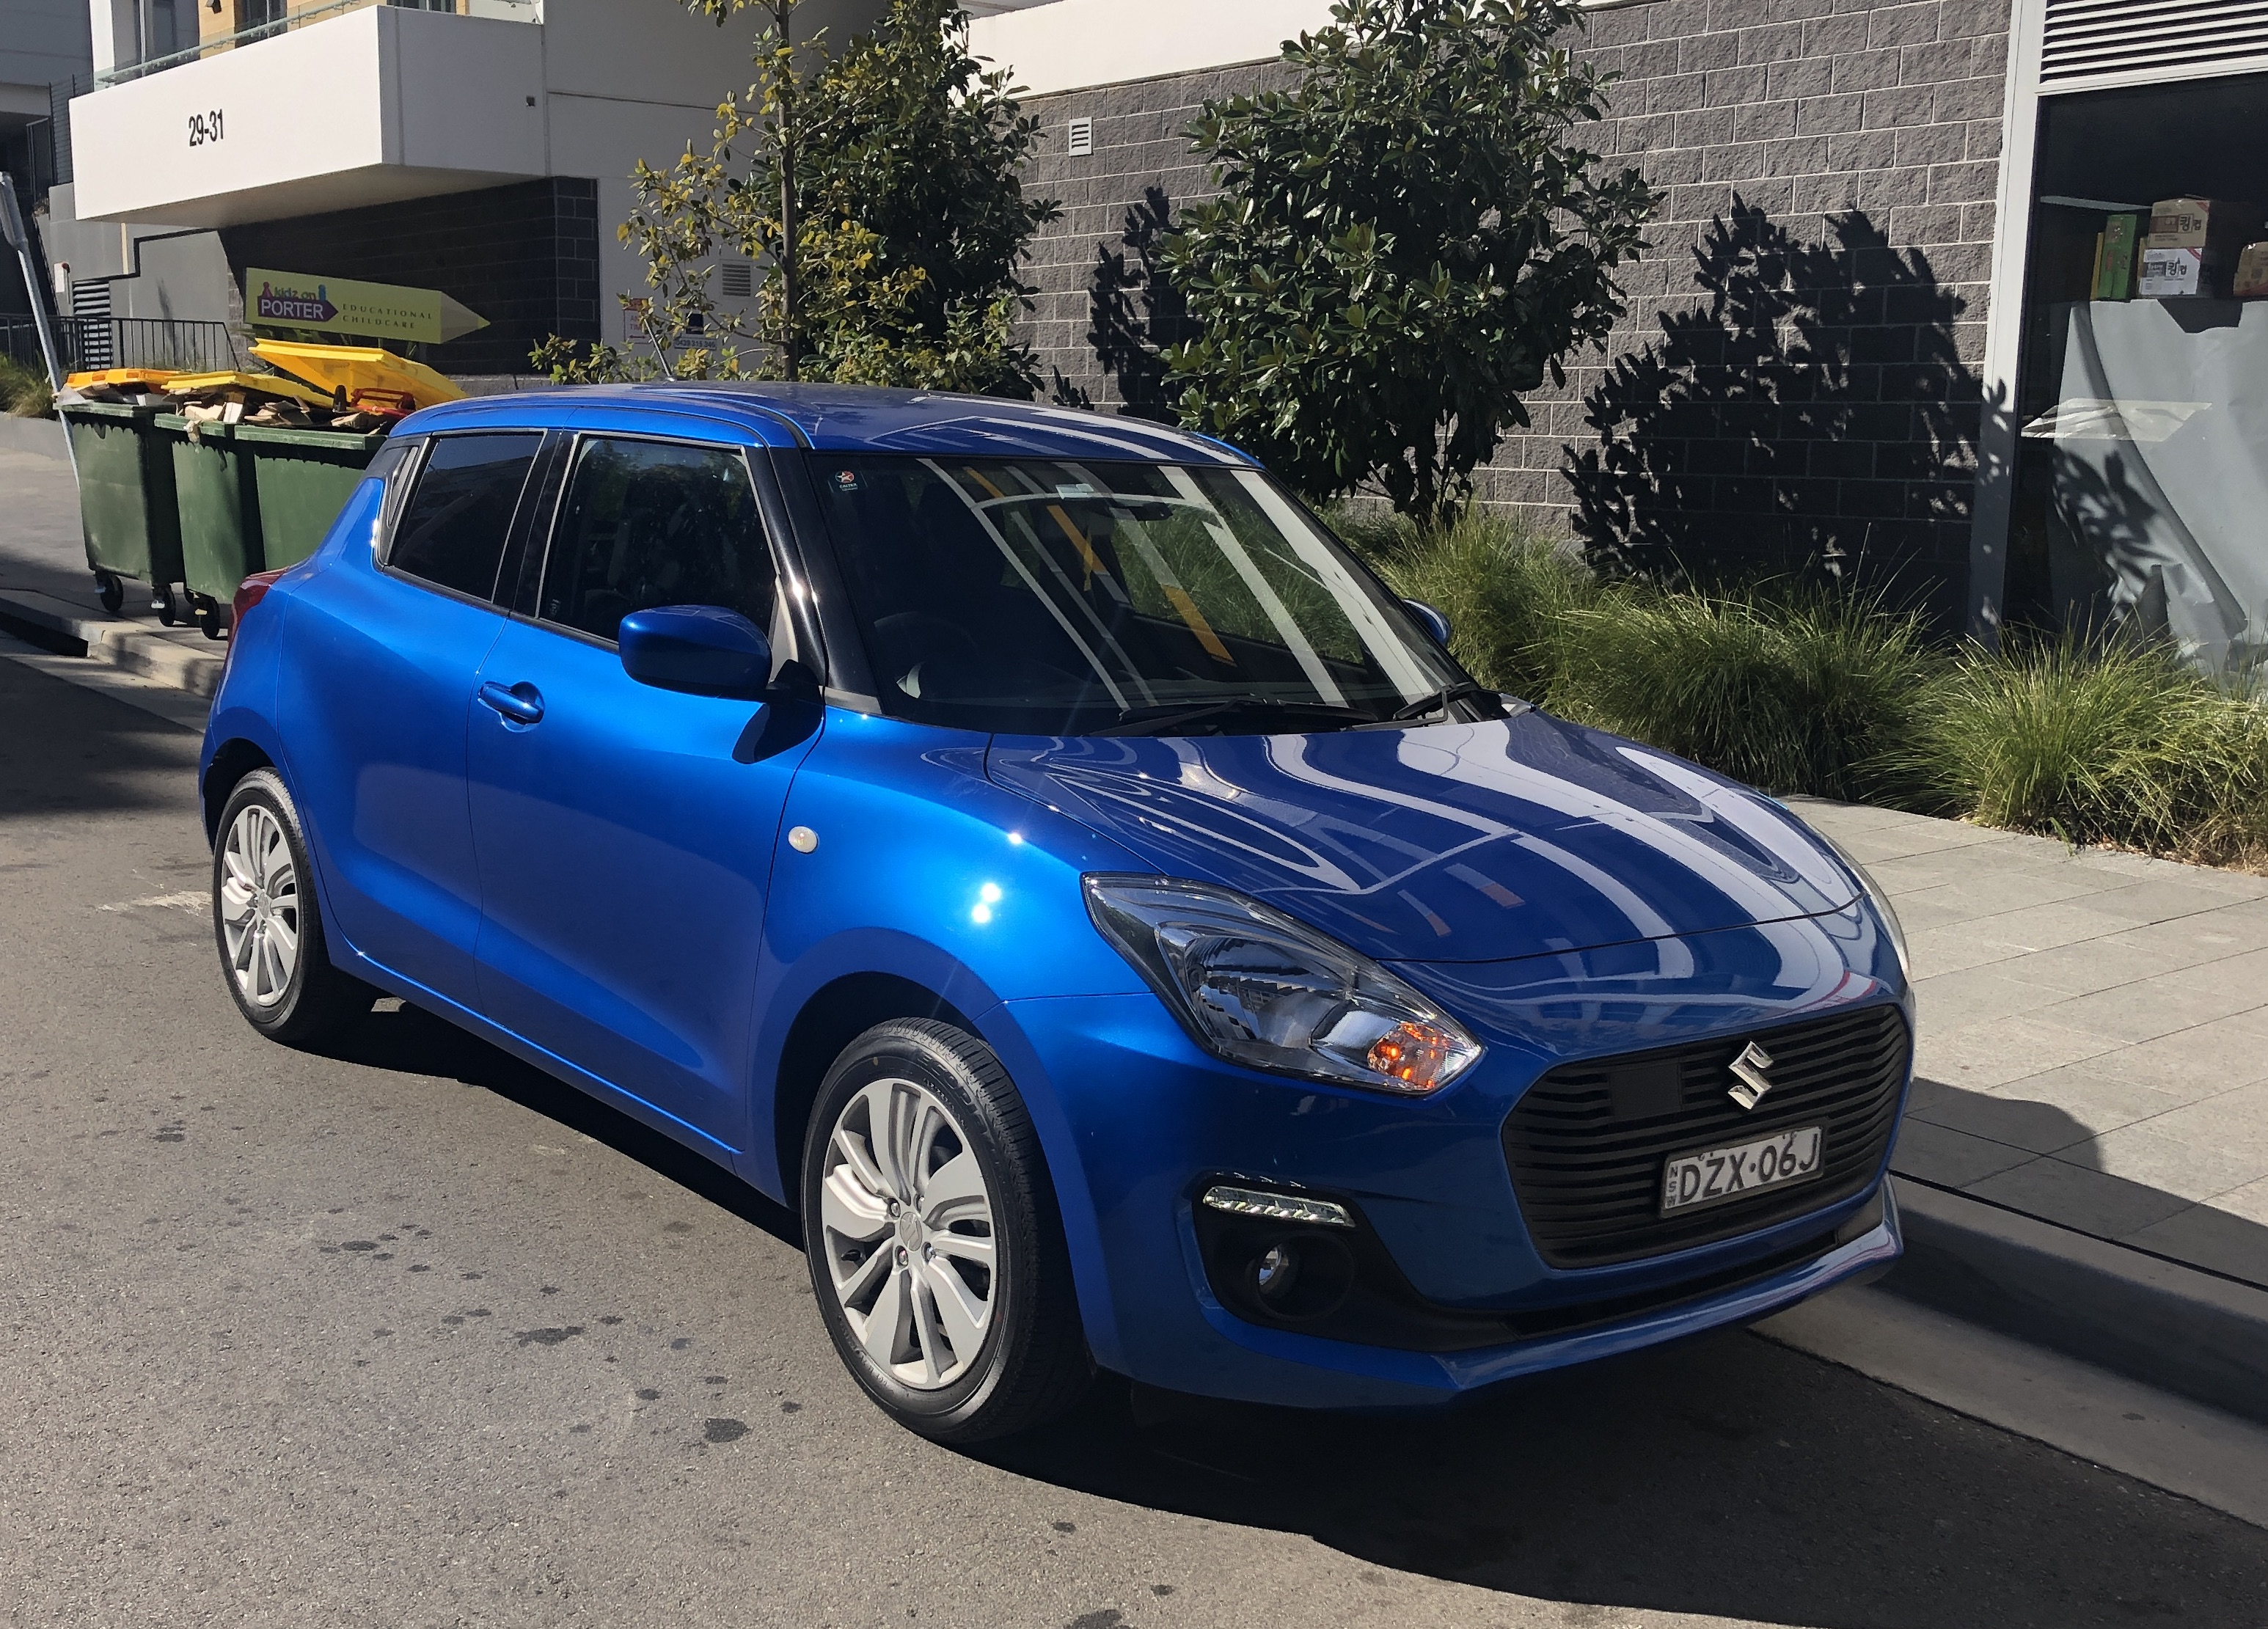 Picture of Samantha's 2018 Suzuki Swift